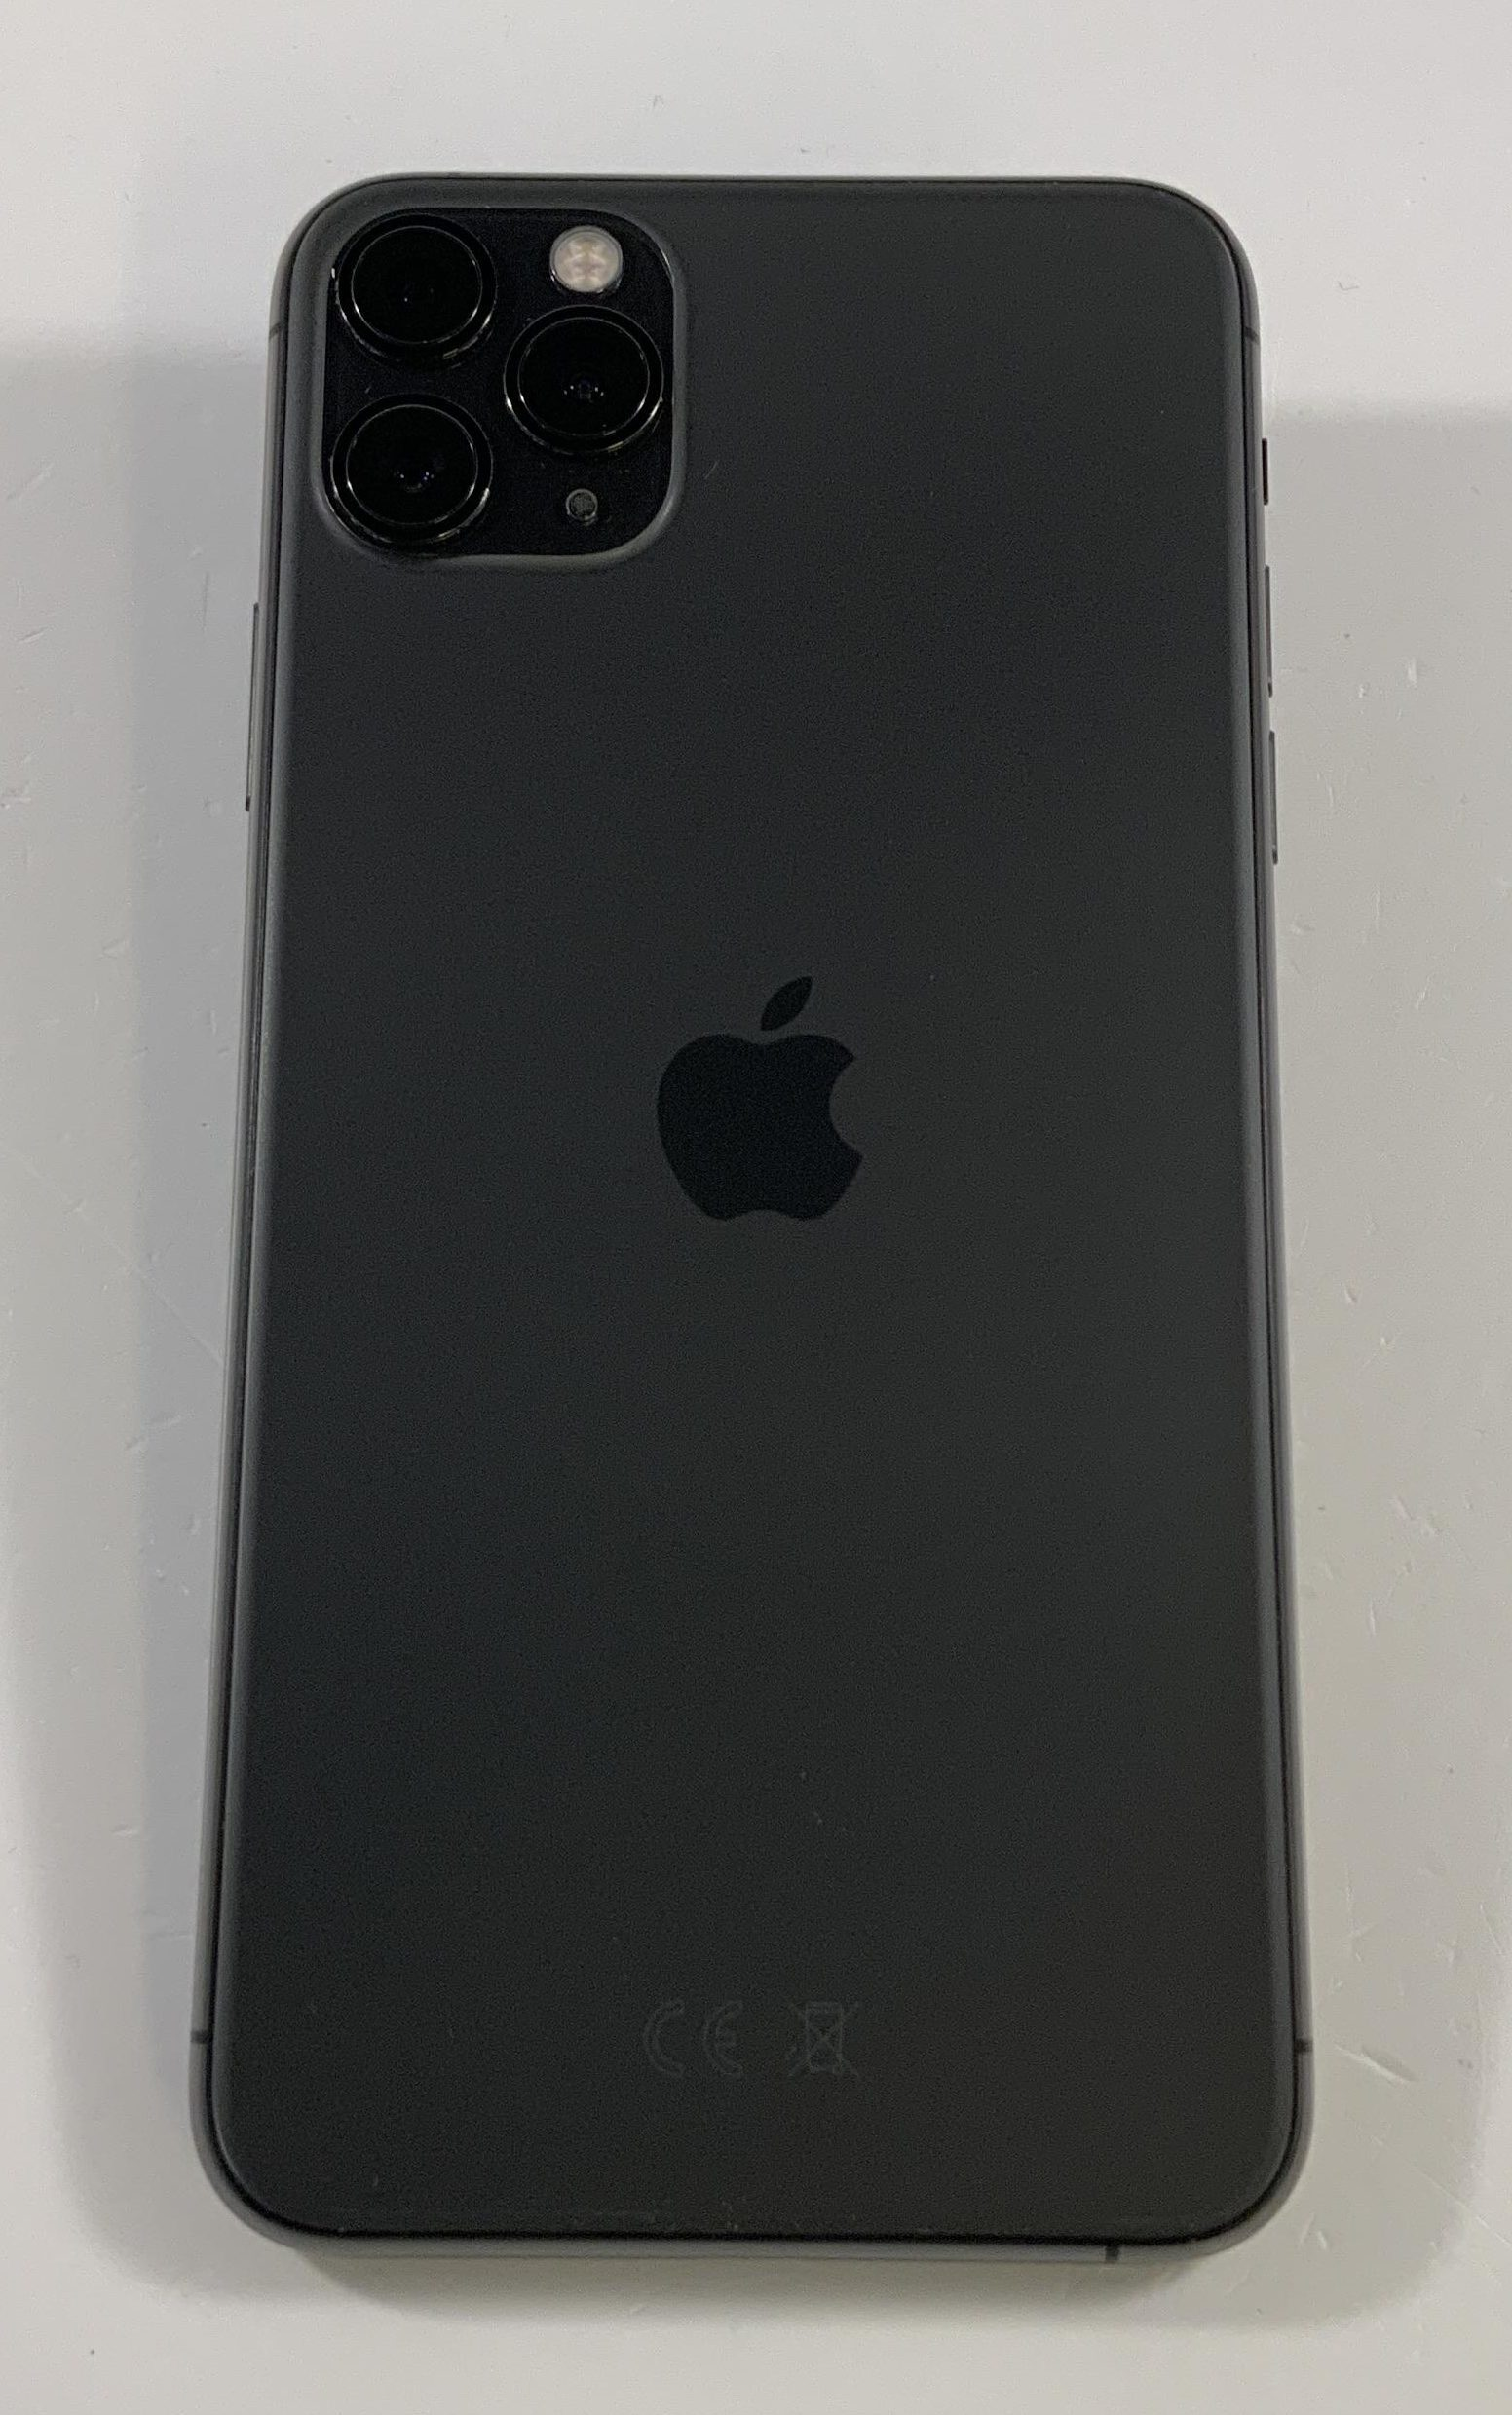 iPhone 11 Pro Max 256GB, 256GB, Space Gray, immagine 2